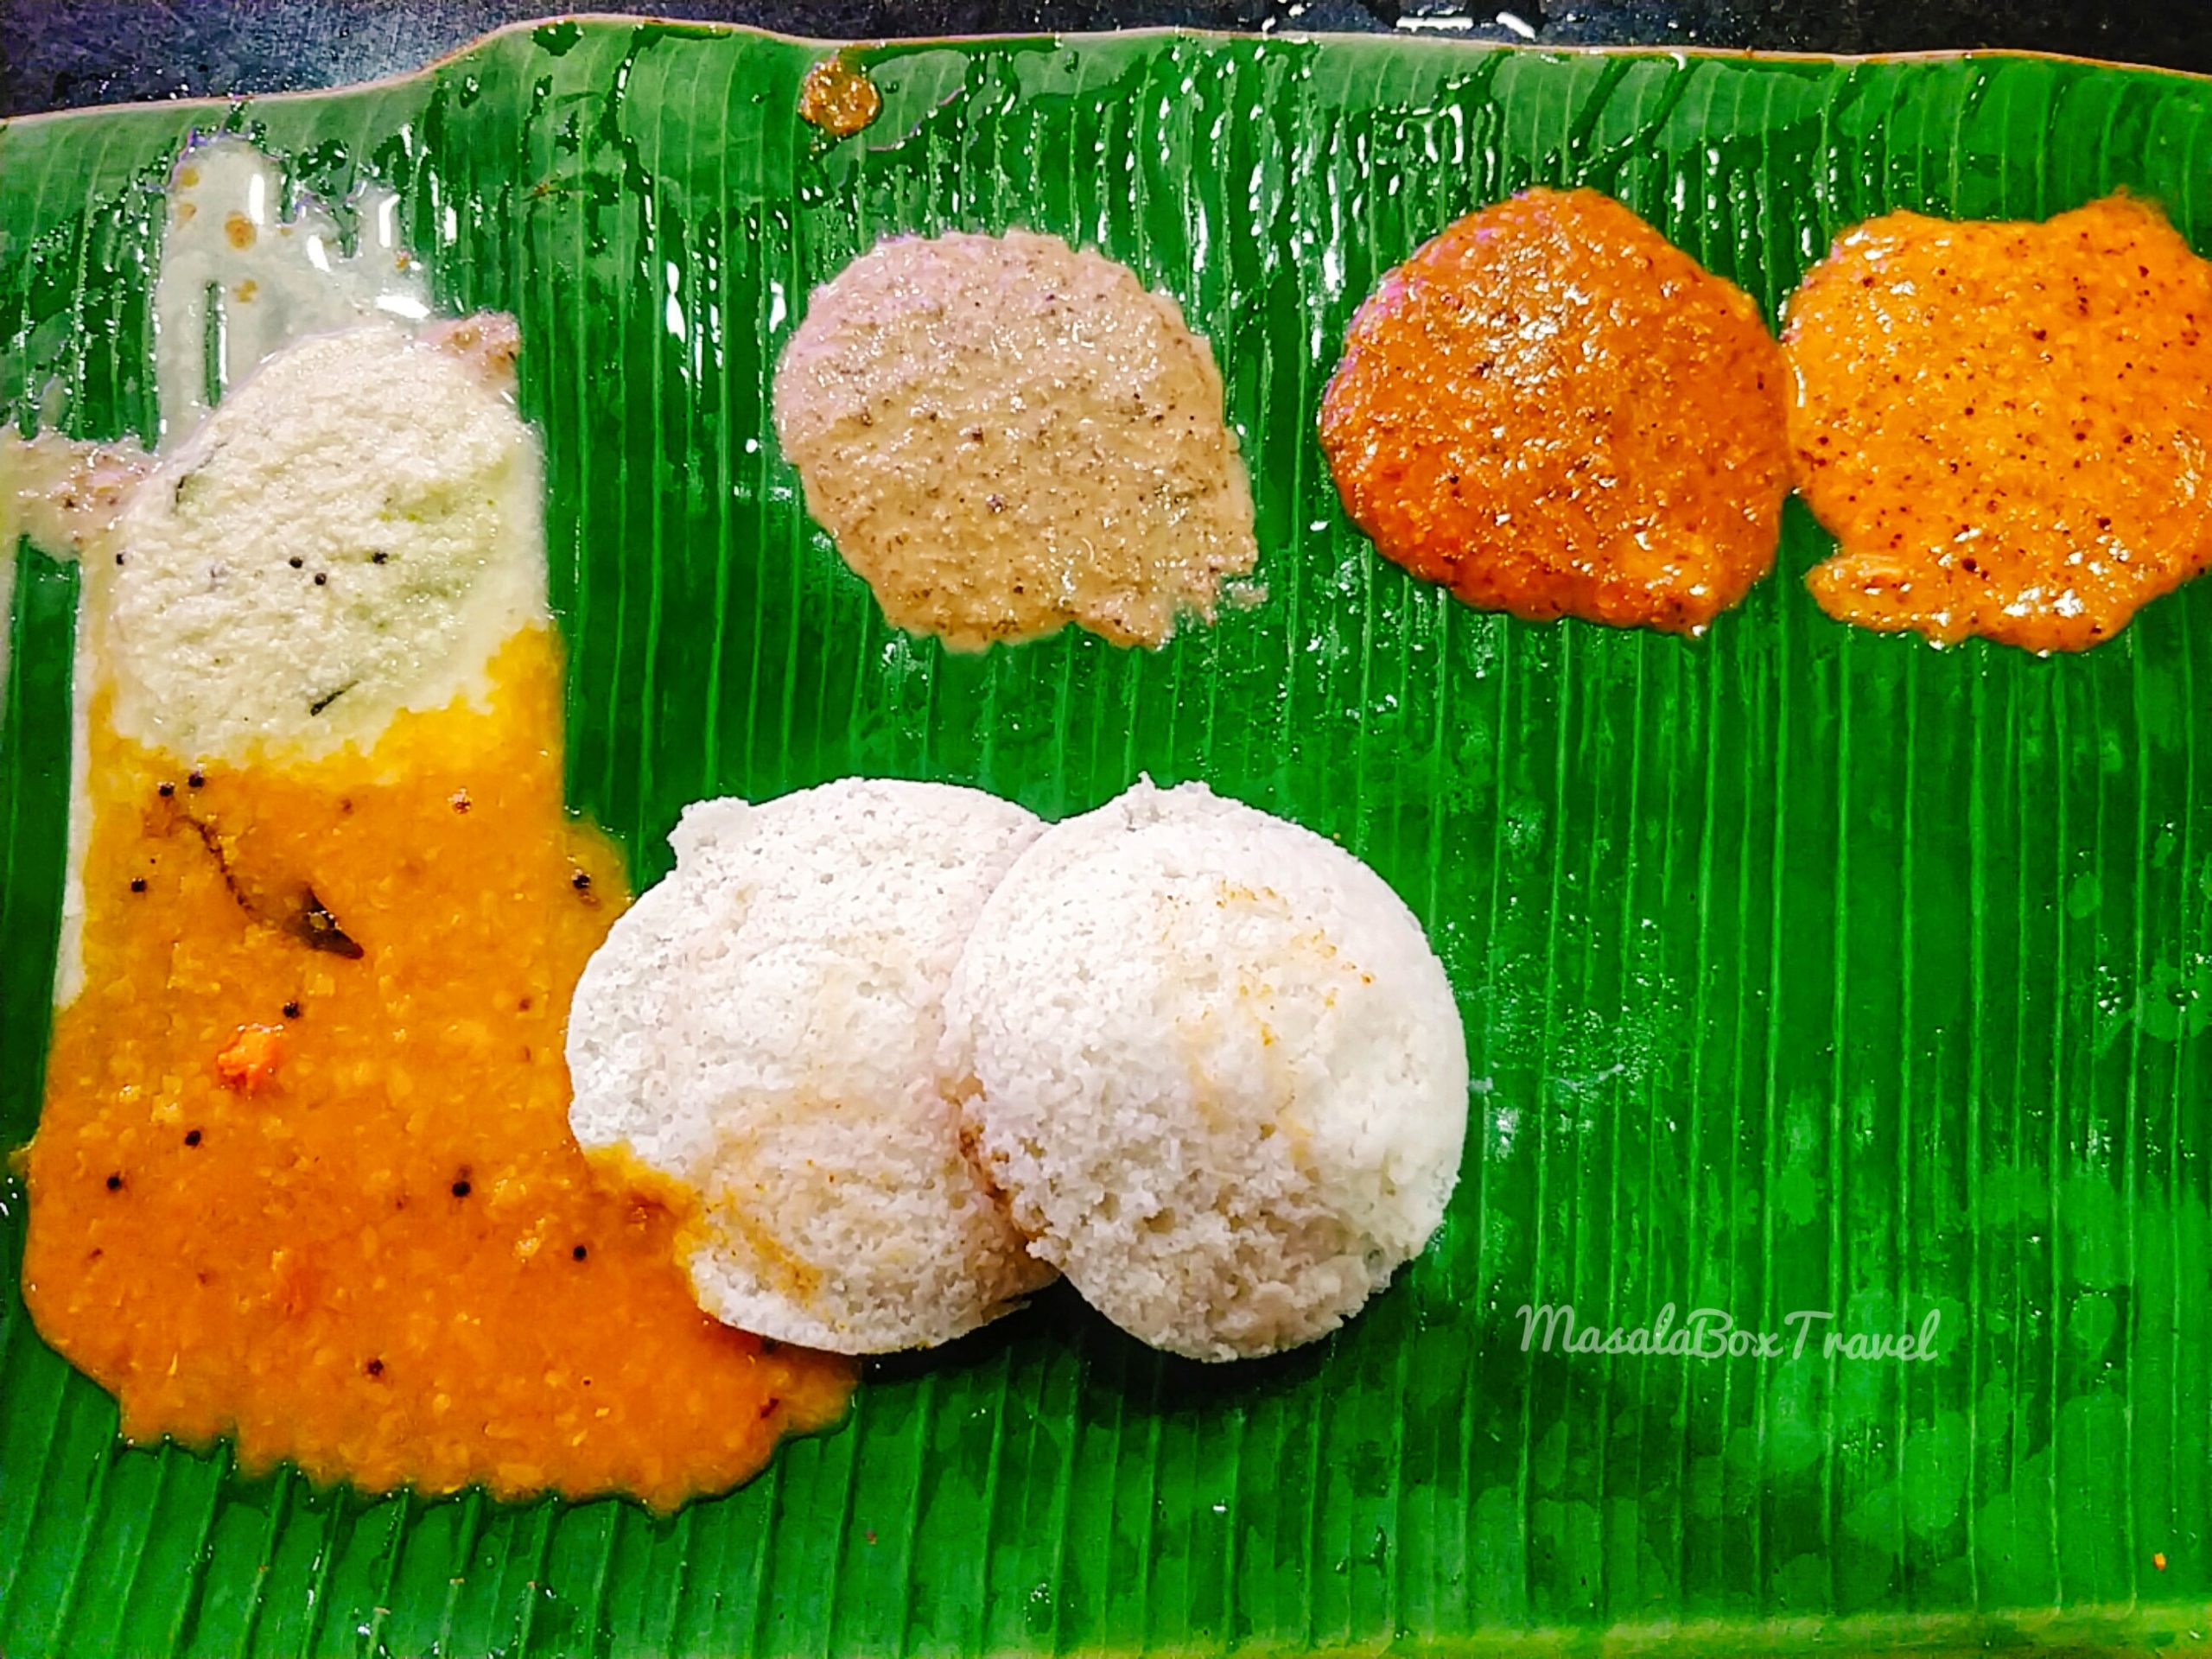 Madurai Food Guide – Delicious Food to try in Madurai